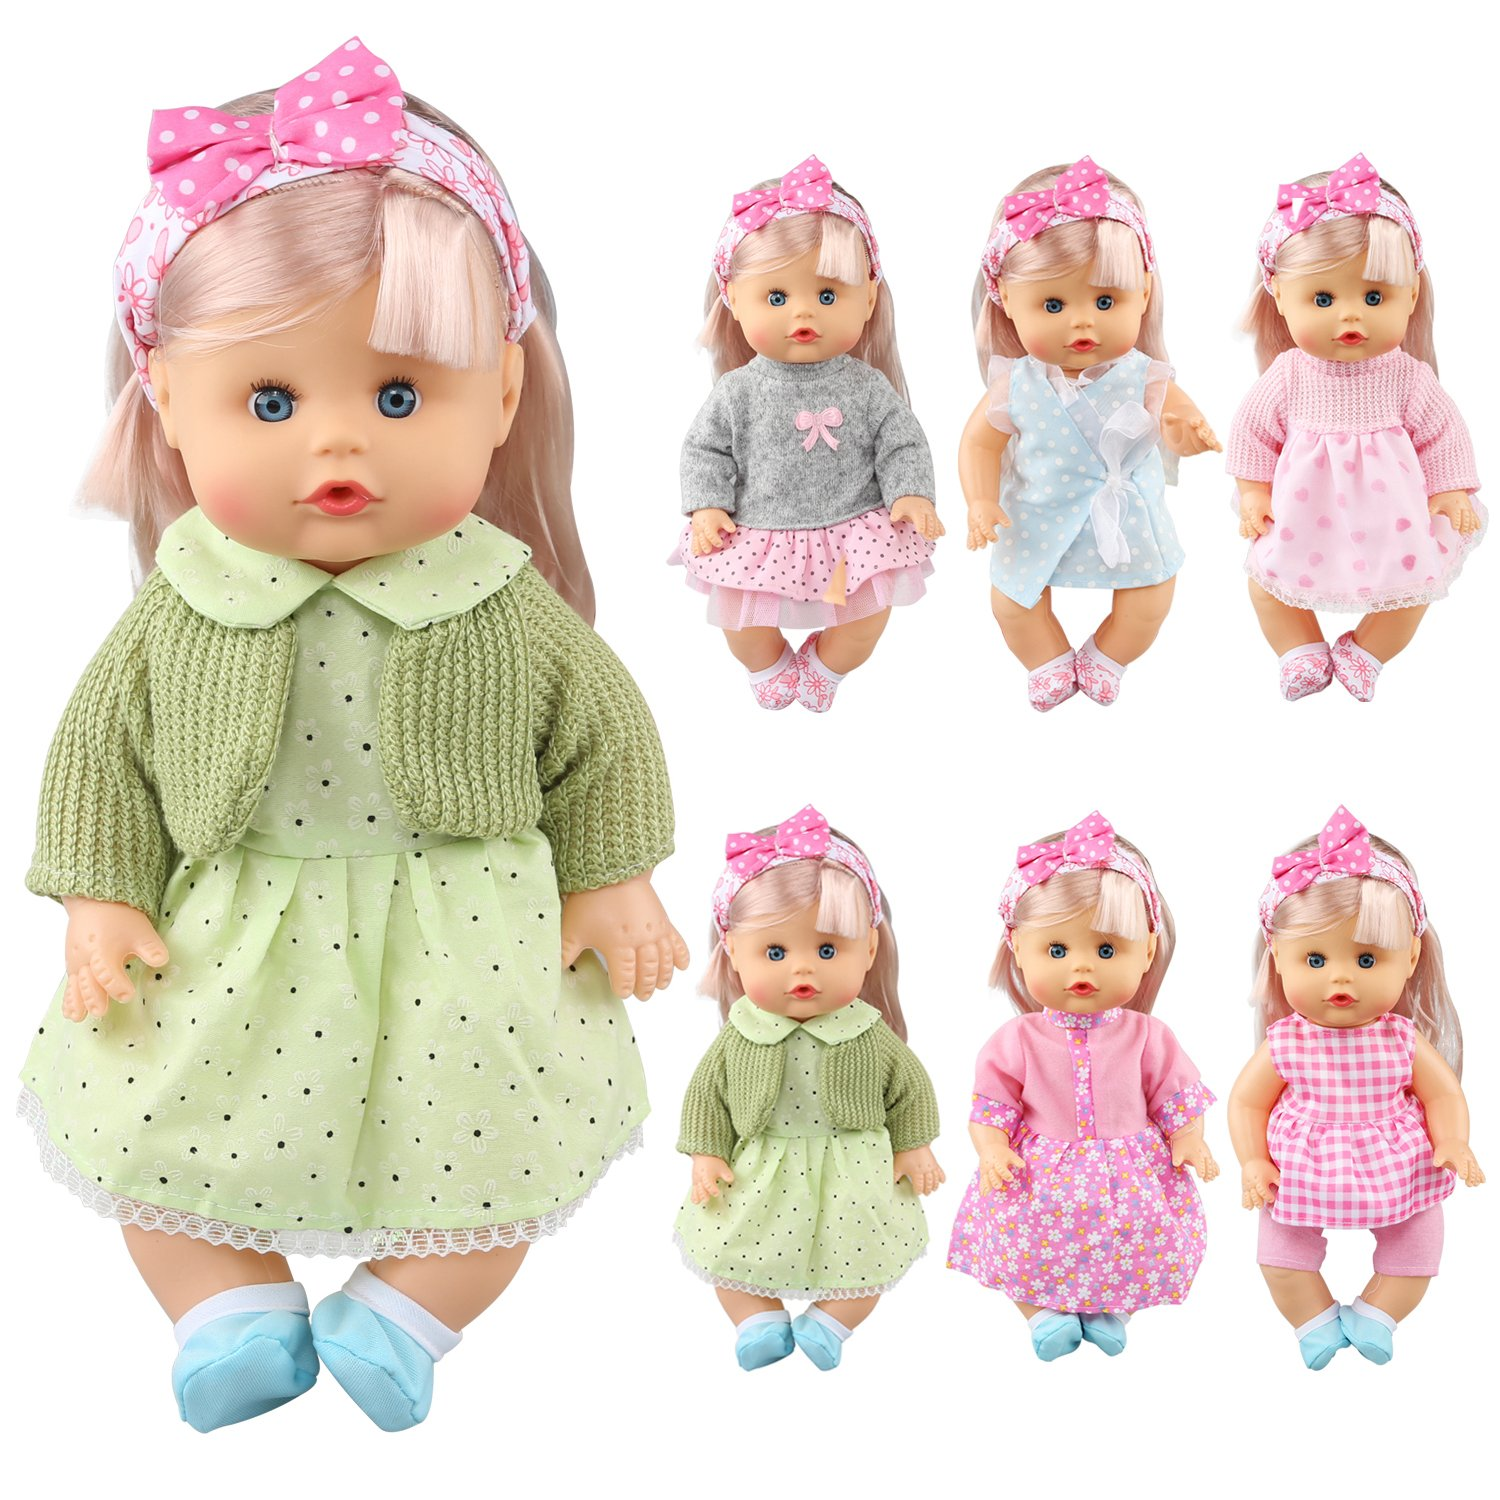 Pack of 6 Alive Lovely Baby Dress Clothes Accessories Gown Outfits Fits for 12inch Doll Bitty Baby Doll Chenghai